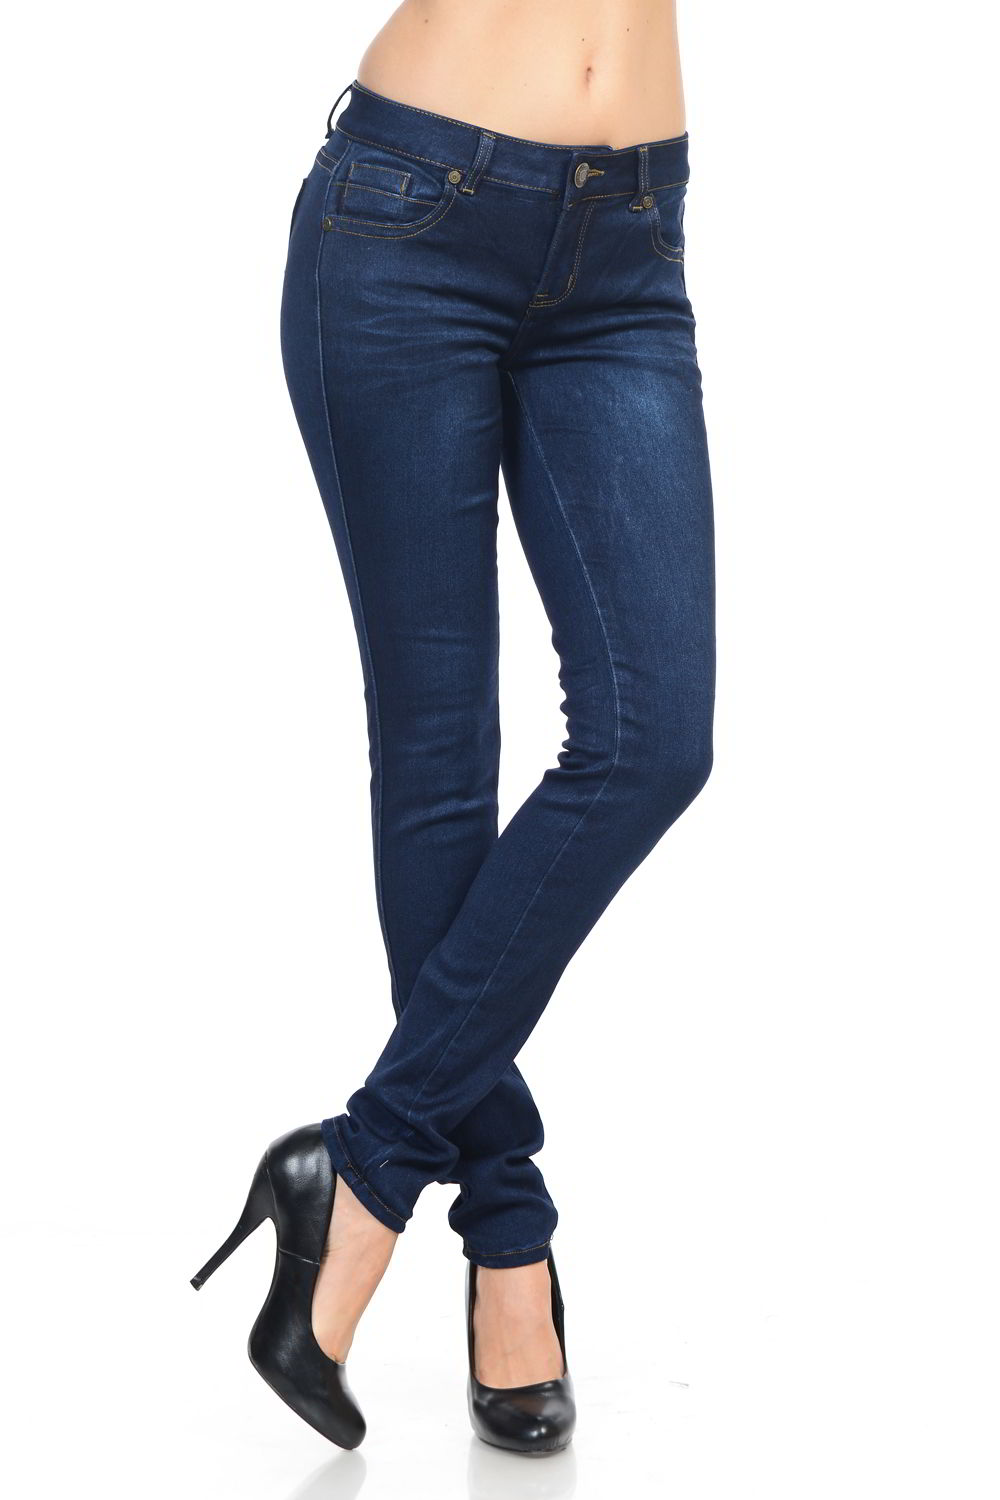 Sweet Look Premium Edition Women's Jeans - Push Up - Style WG0249